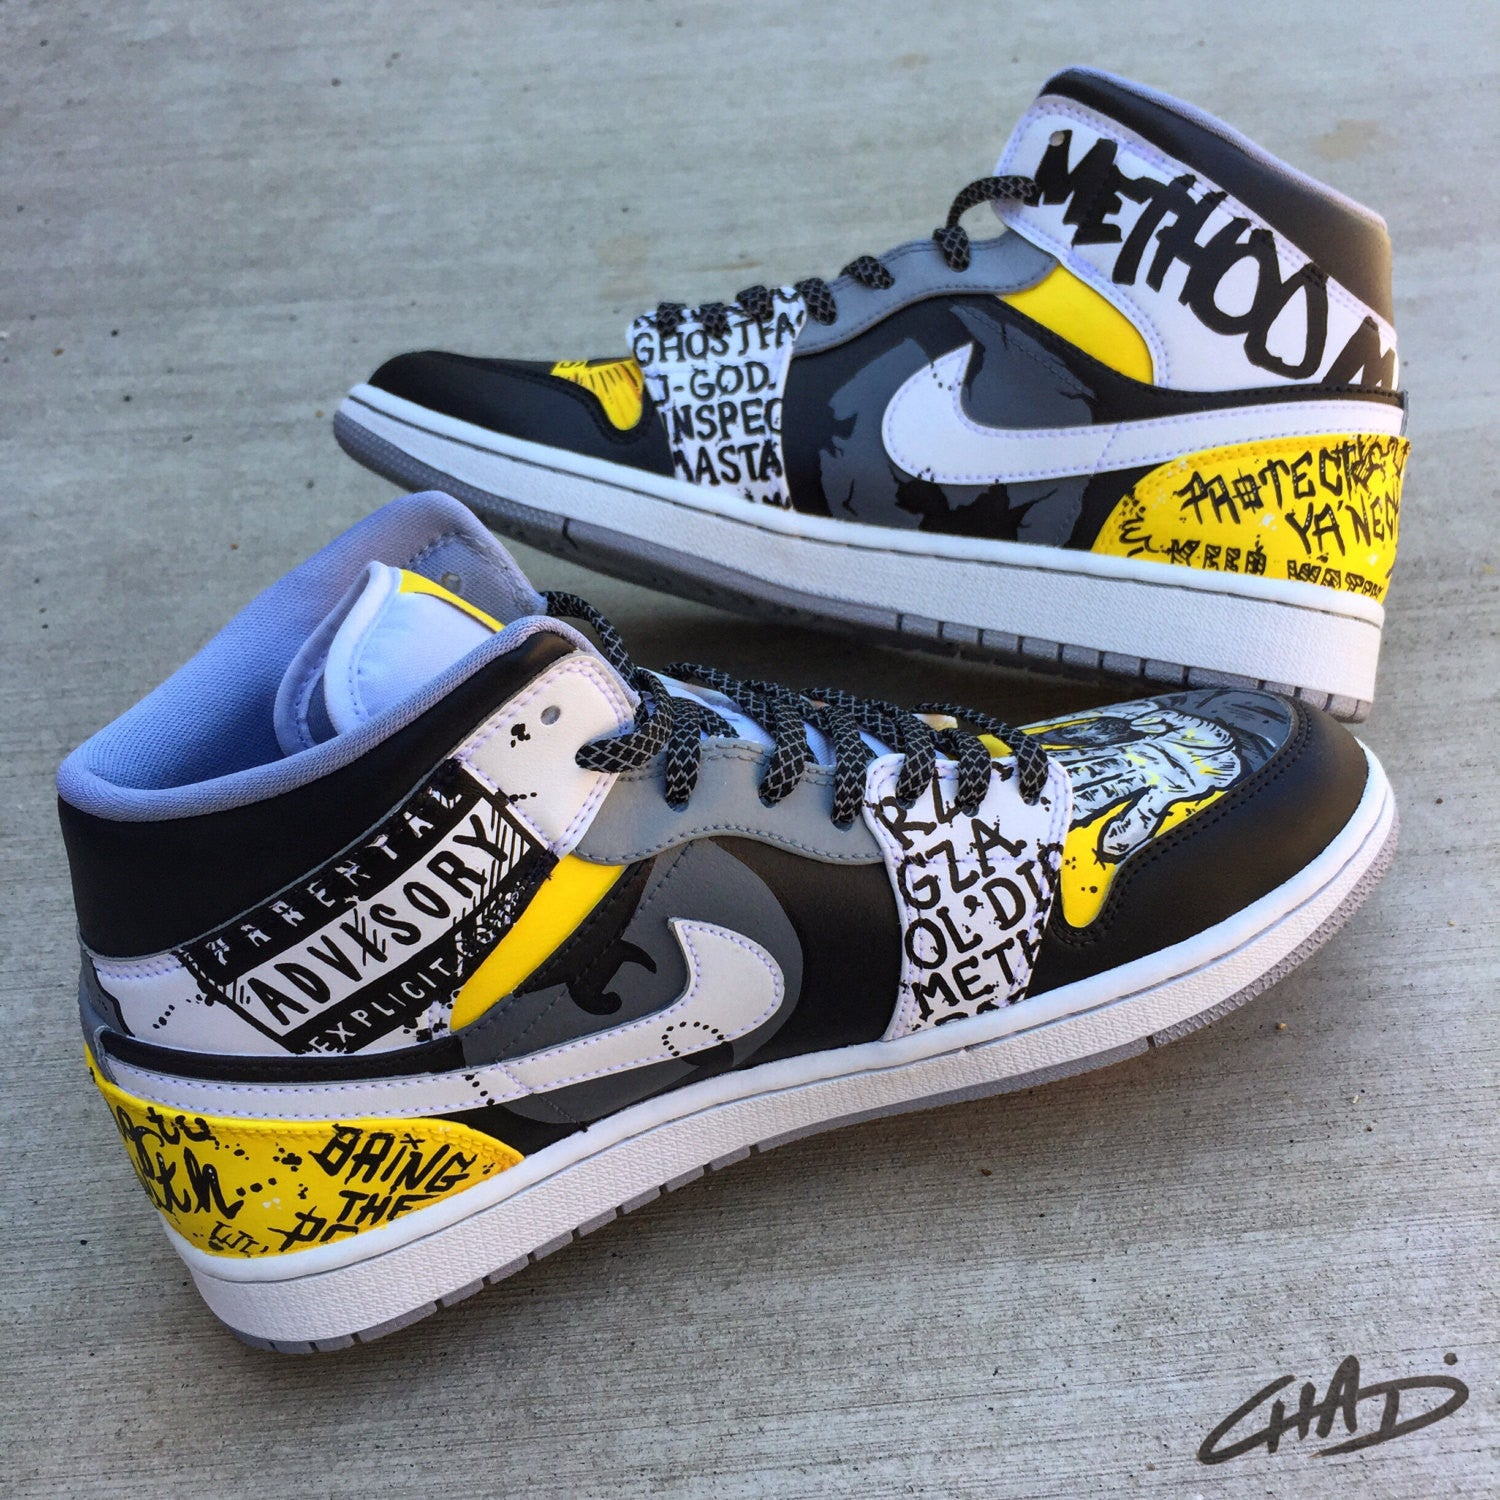 WuTang Custom hand painted Jordan shoes